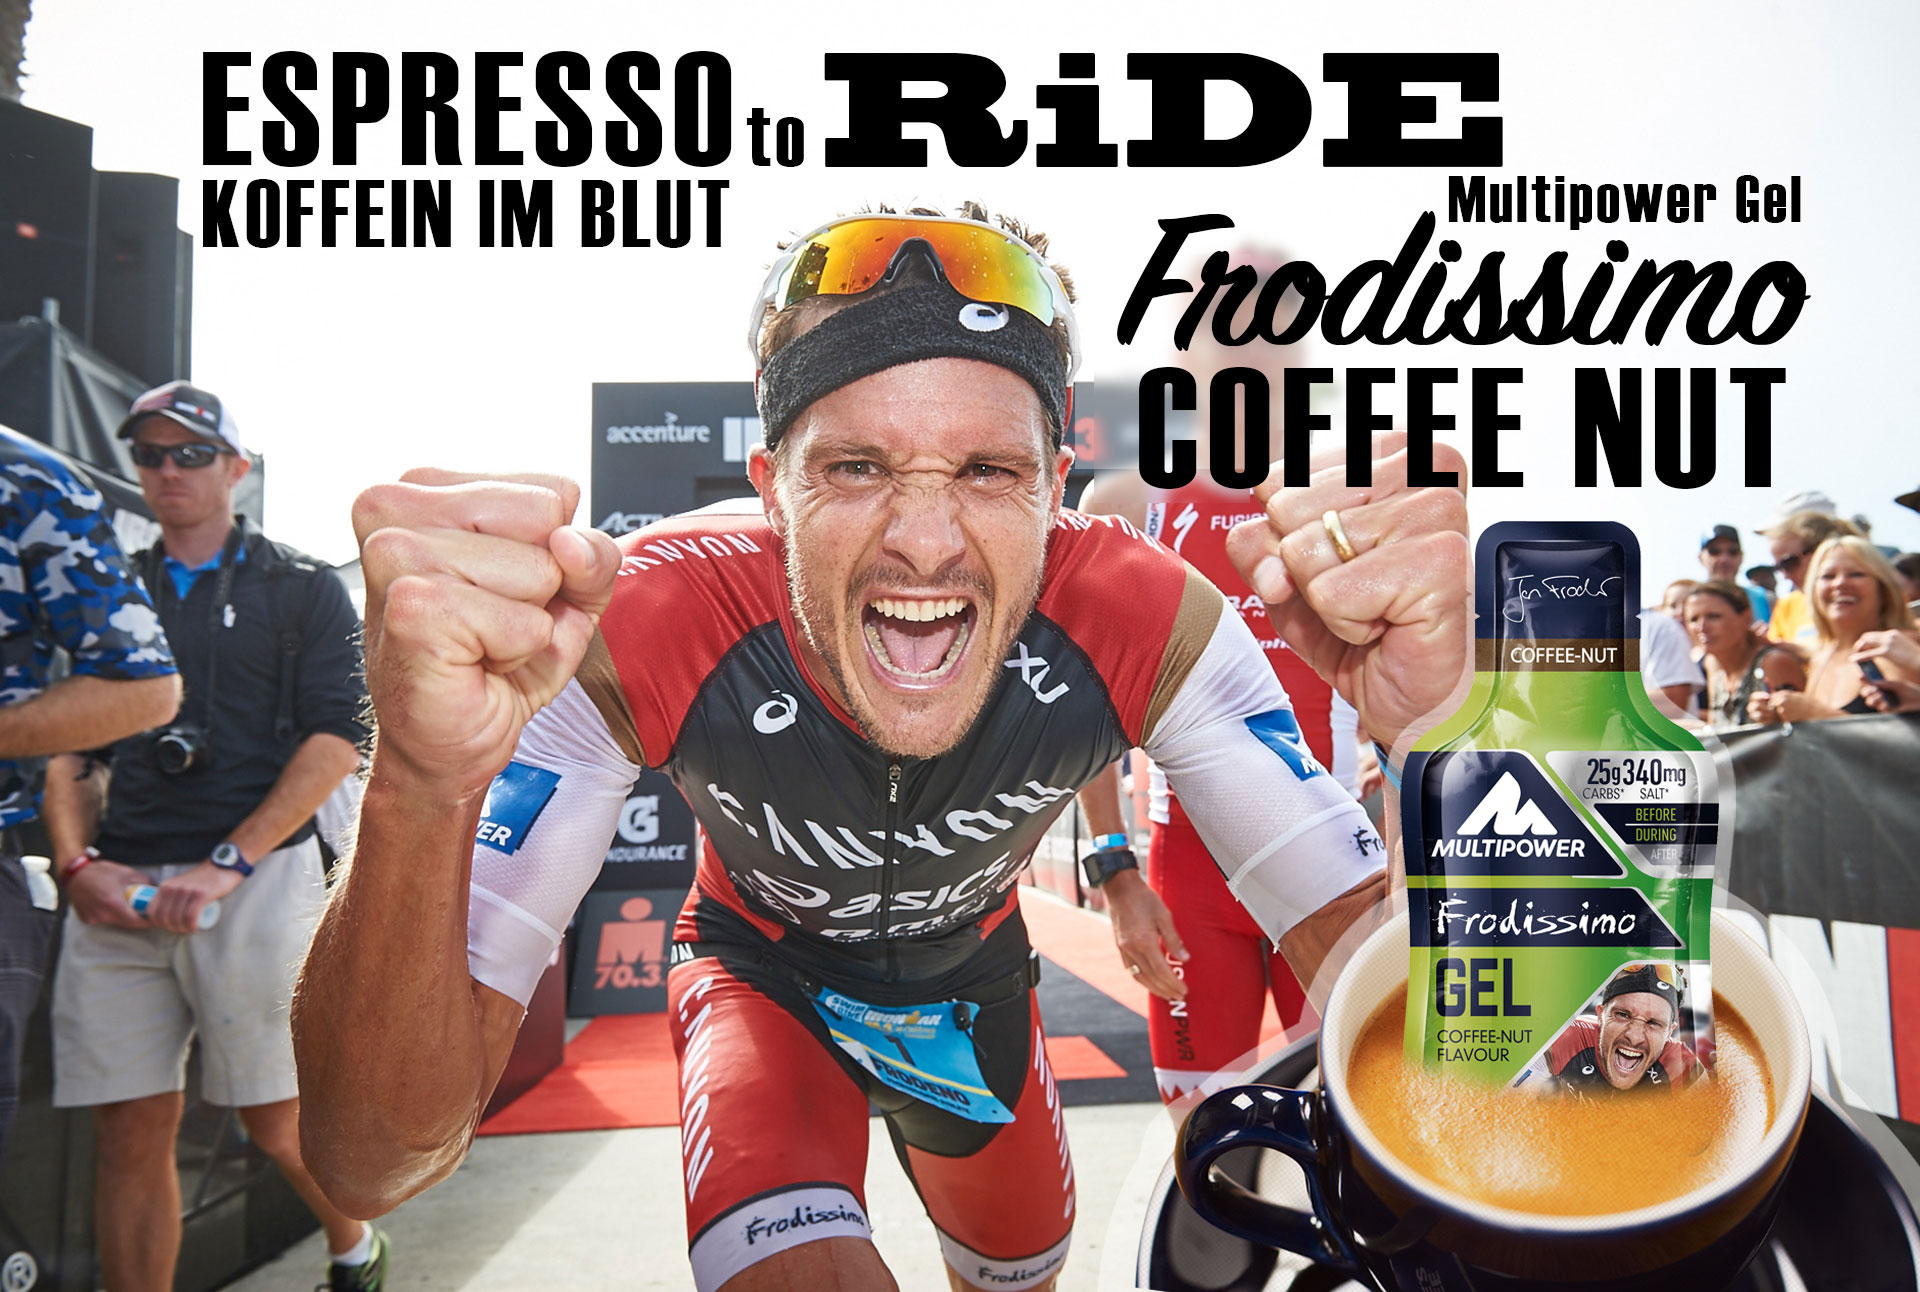 KOFFEIN IM BLUT Espresso to Ride - Multipower Gel Frodissimo Coffee Nut / Keine Kompromisse für Ironman Weltmeister Jan Frodeno © Multipower